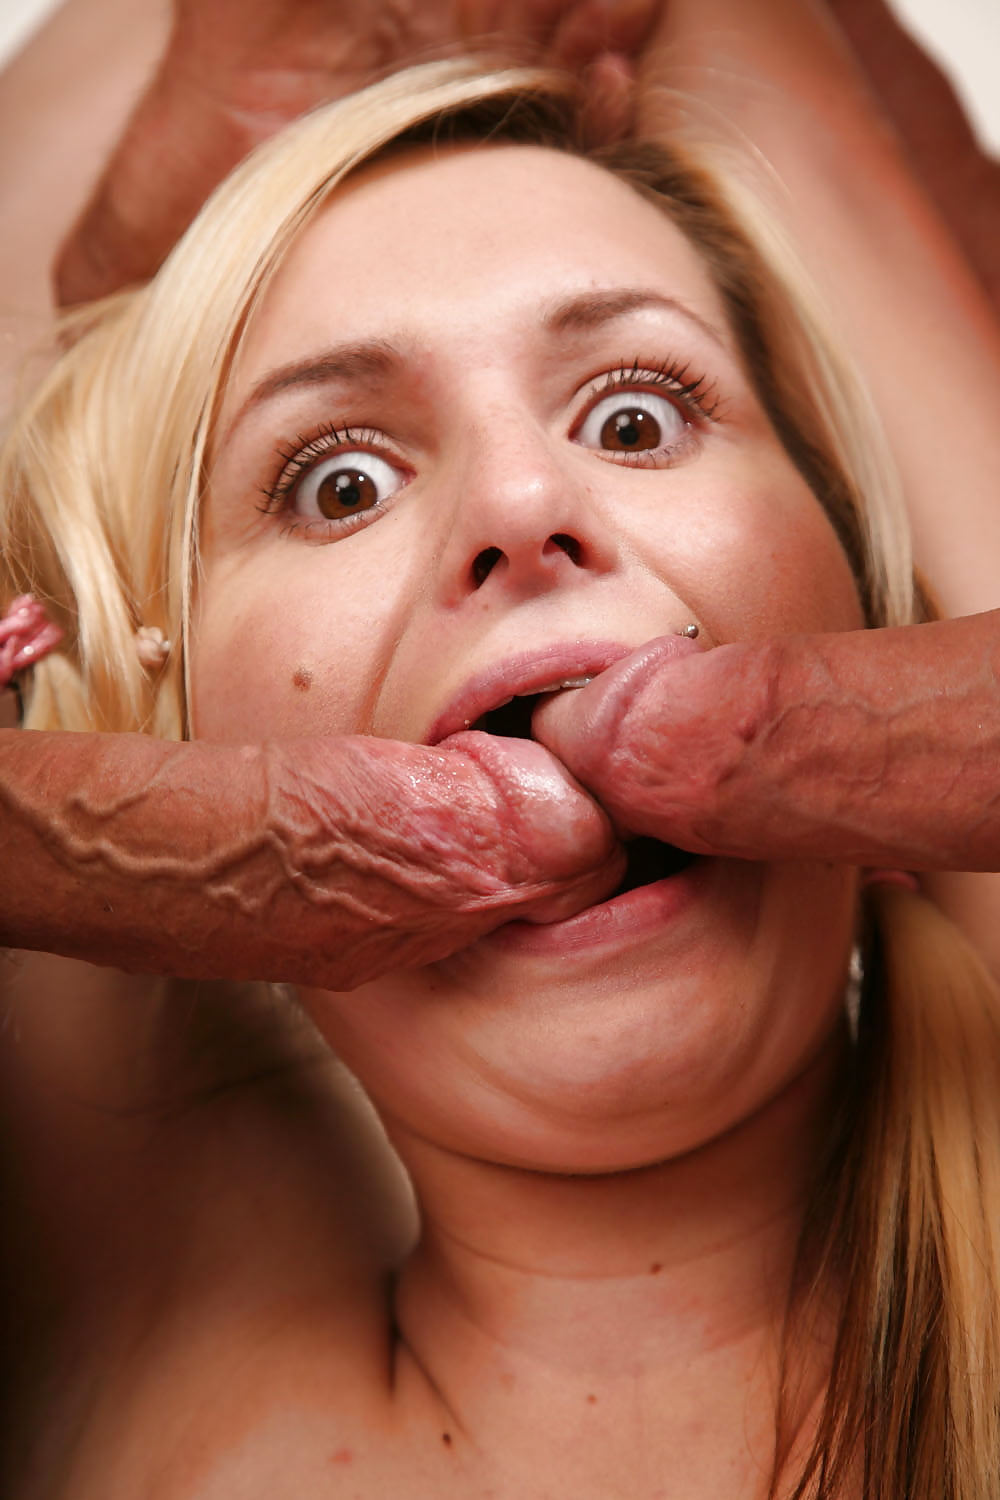 hot-girl-mouth-fucked-moving-pics